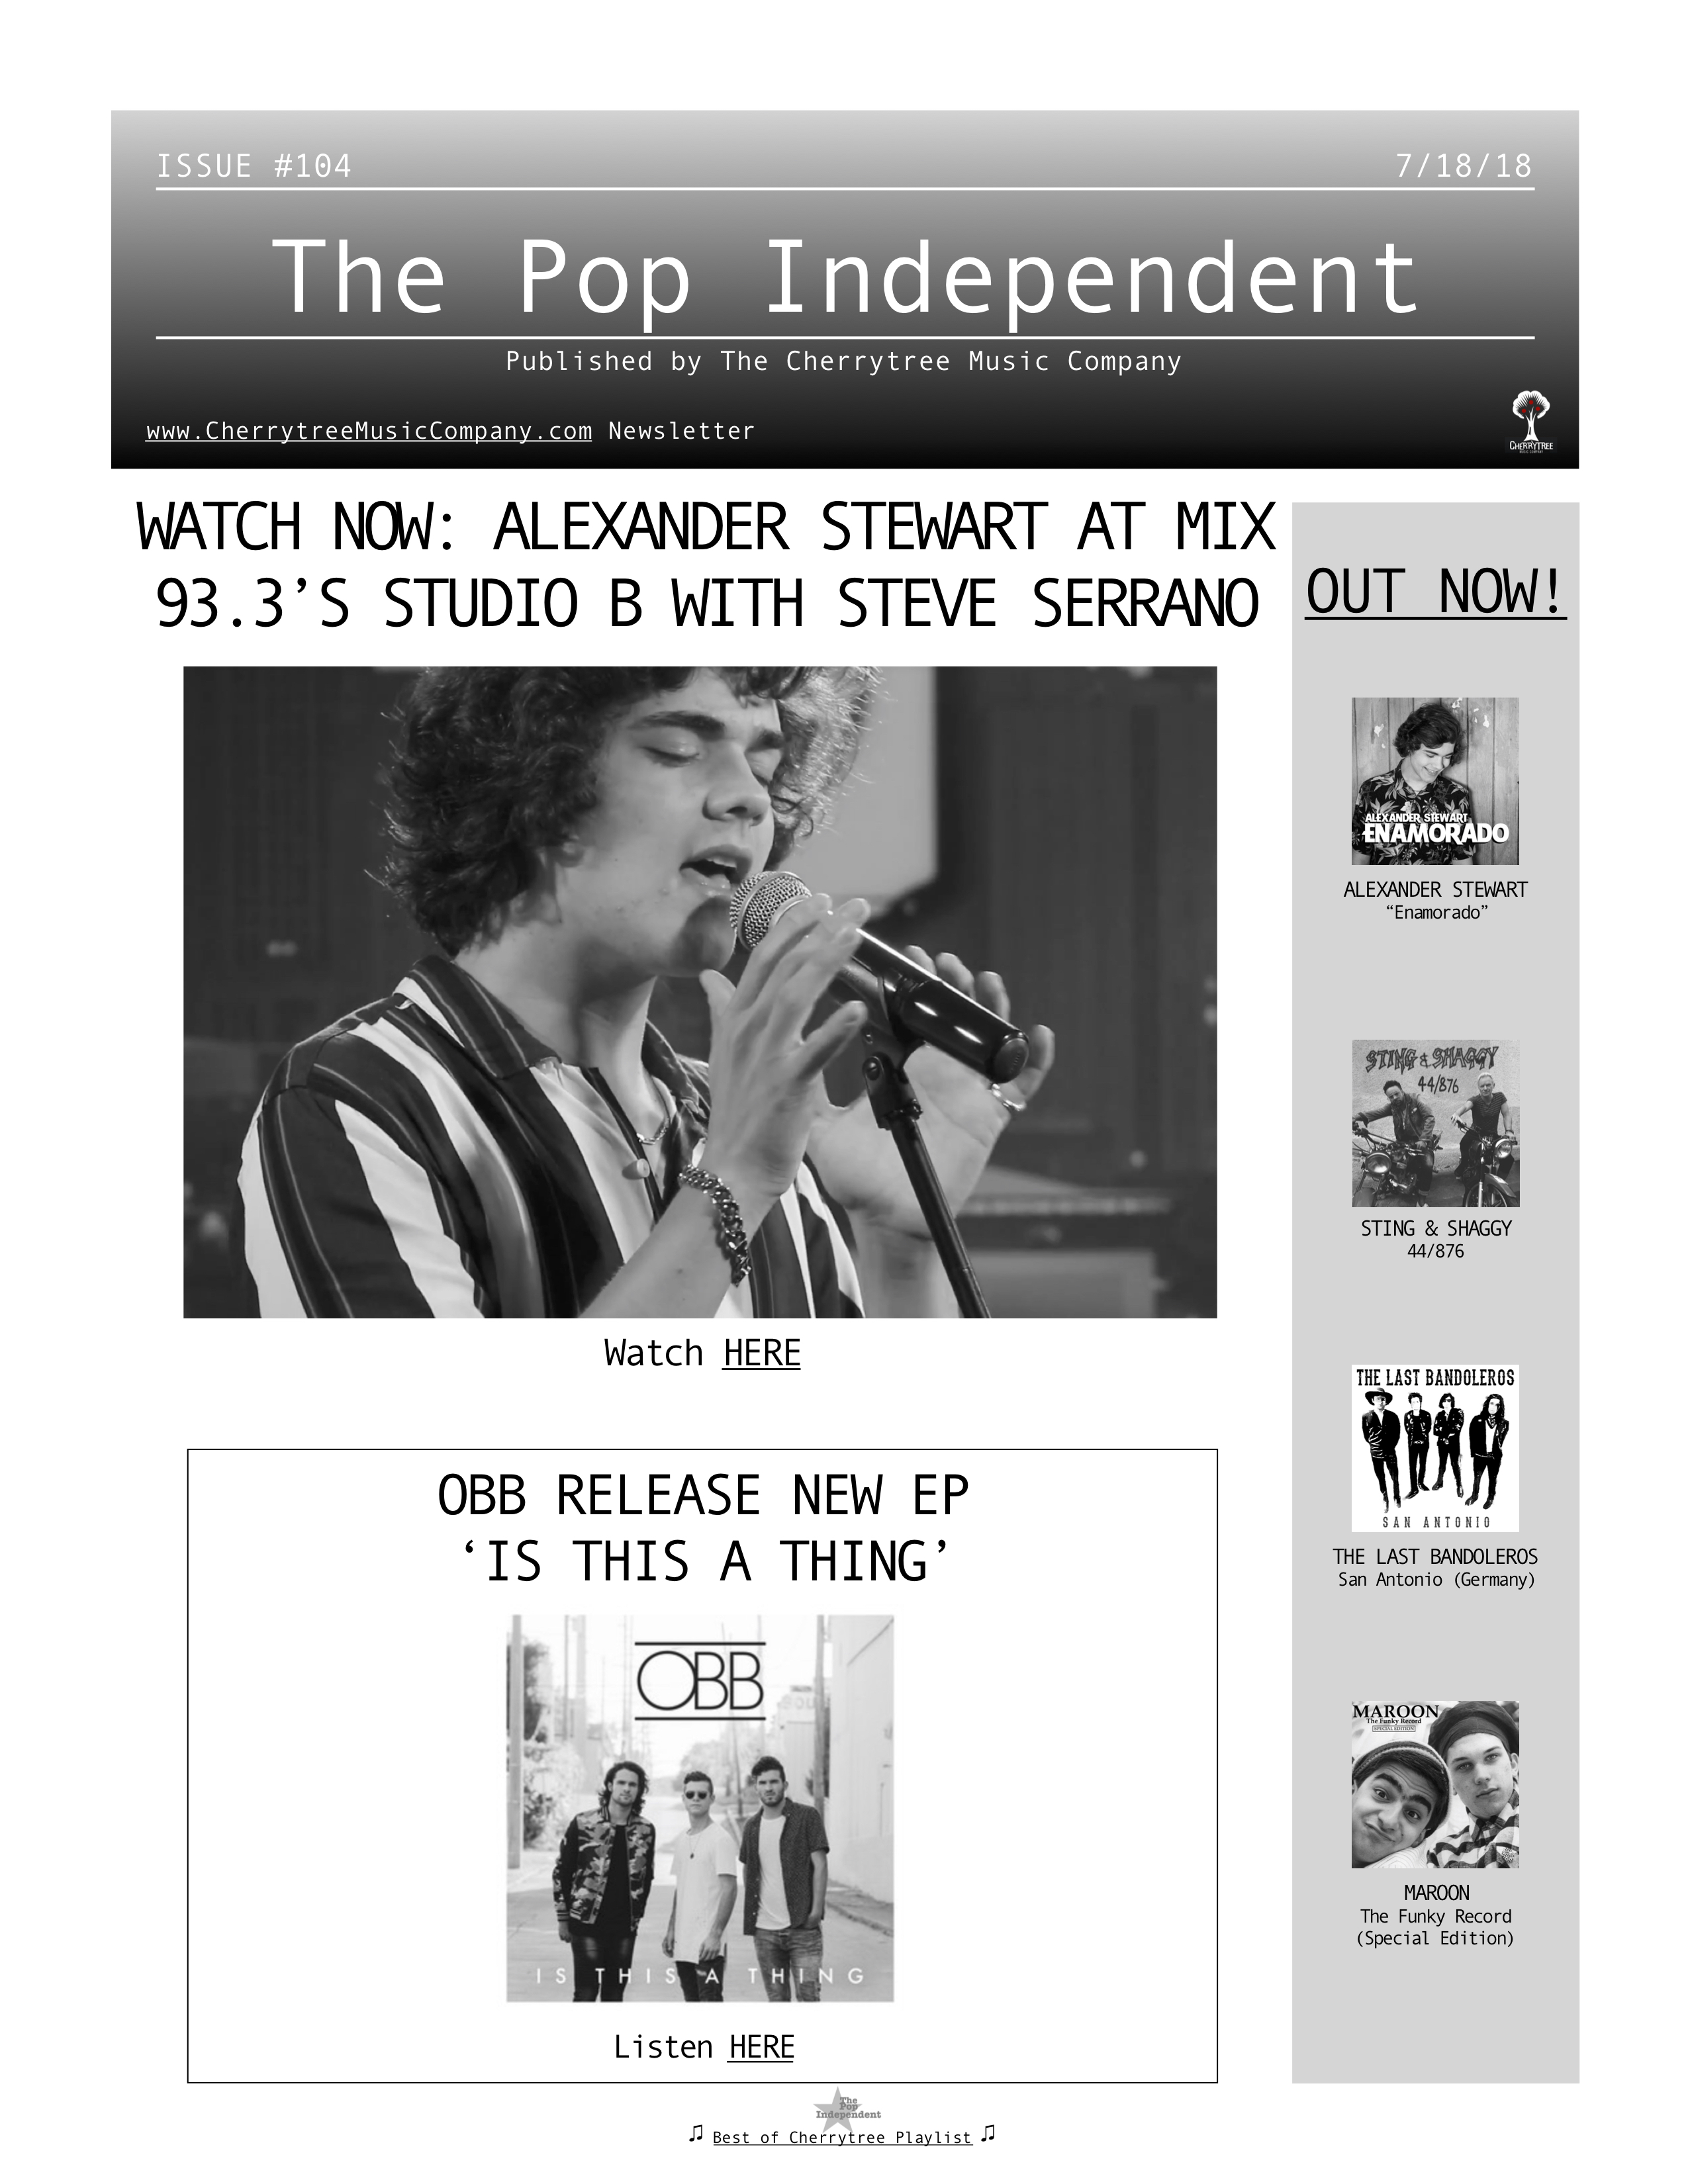 The Pop Independent, issue 104